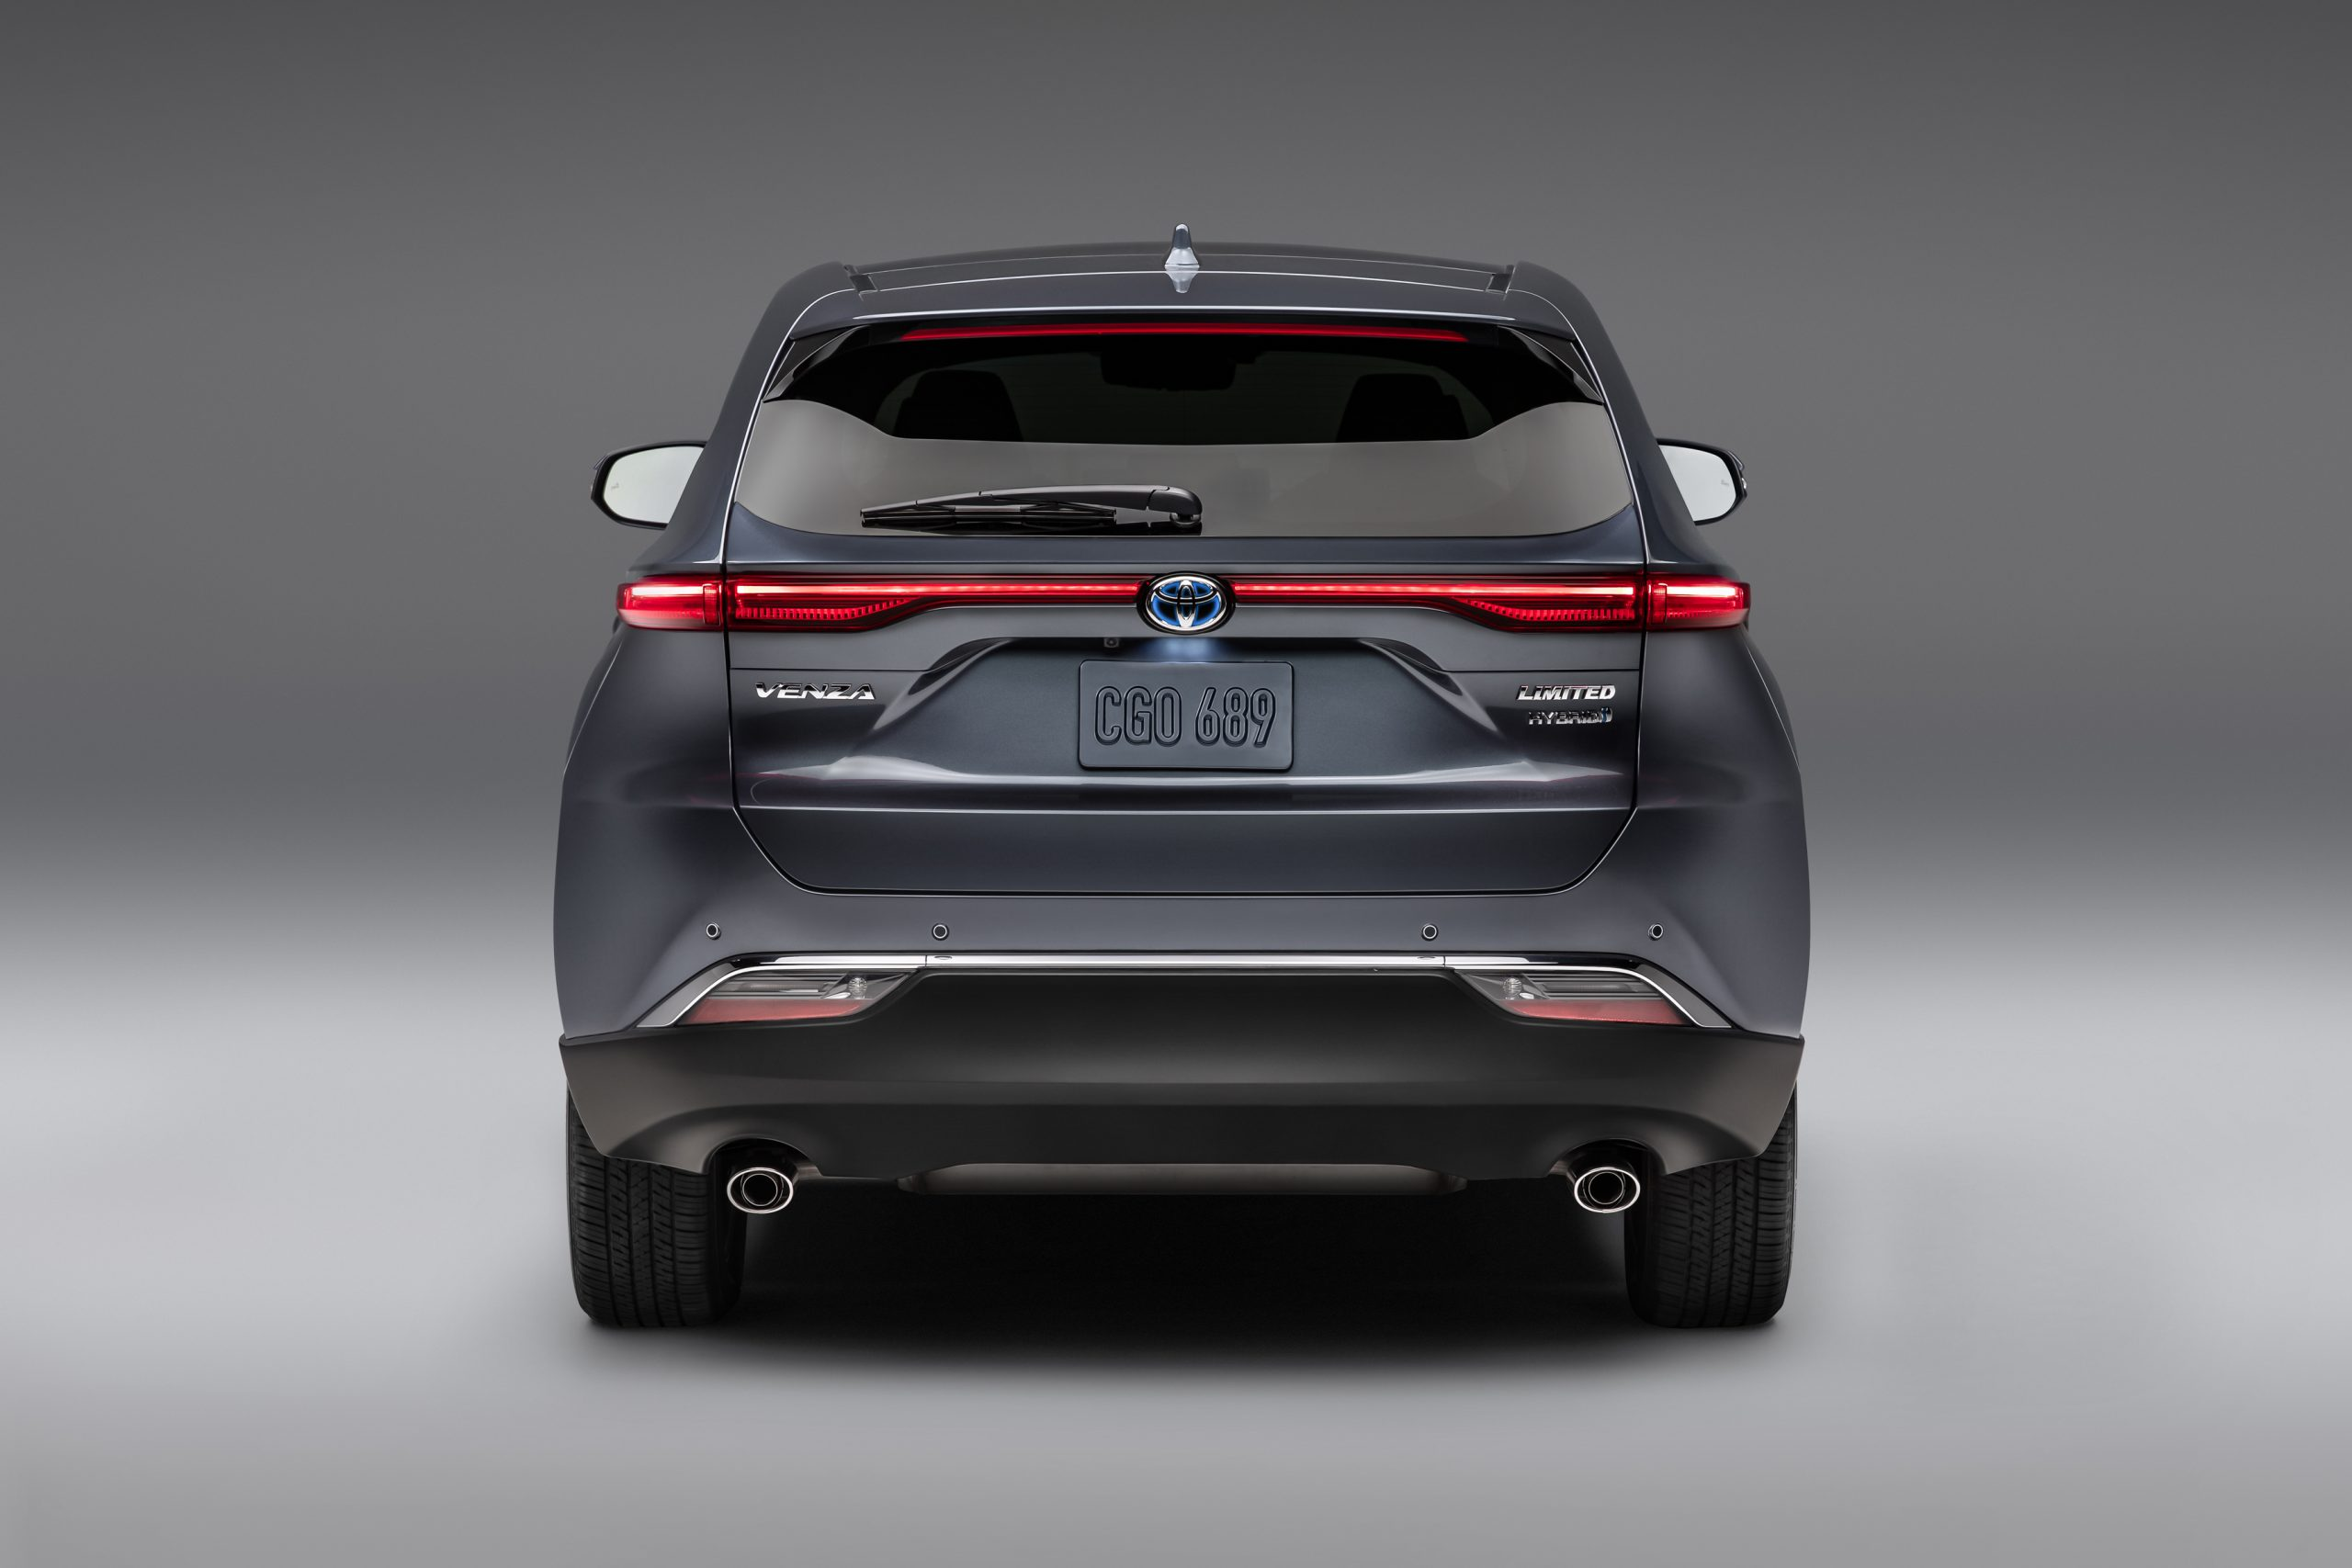 2021-Toyota-Venza_Exterior_005-scaled.jpg